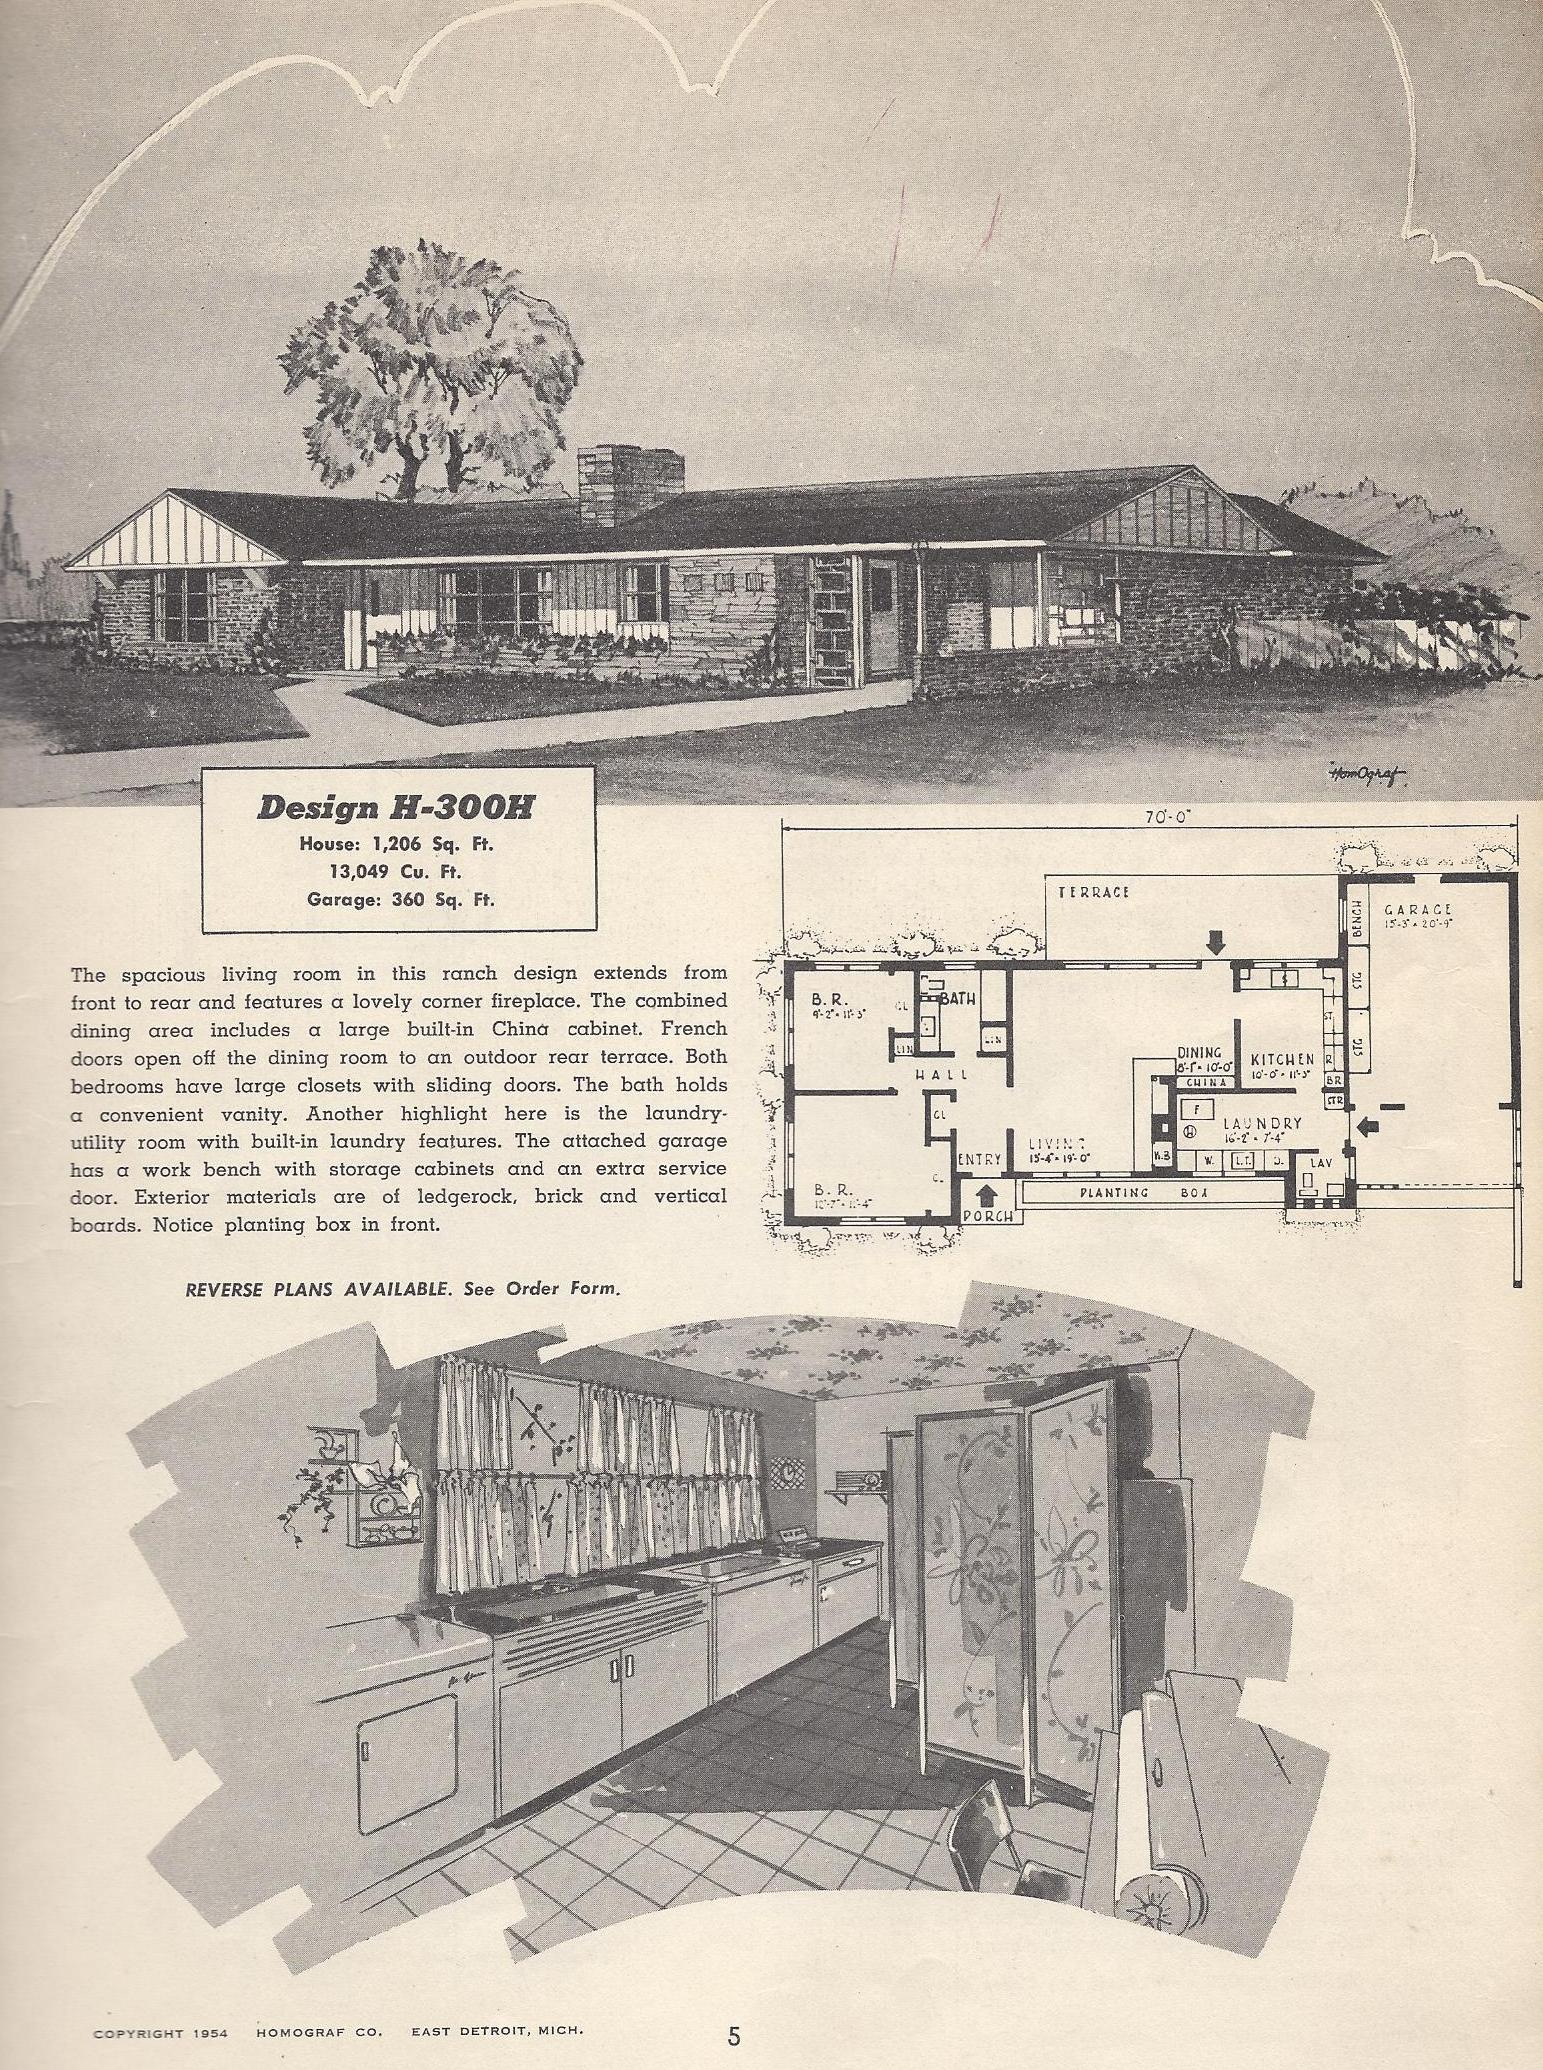 Vintage house plans 300h antique alter ego for Vintage ranch house plans